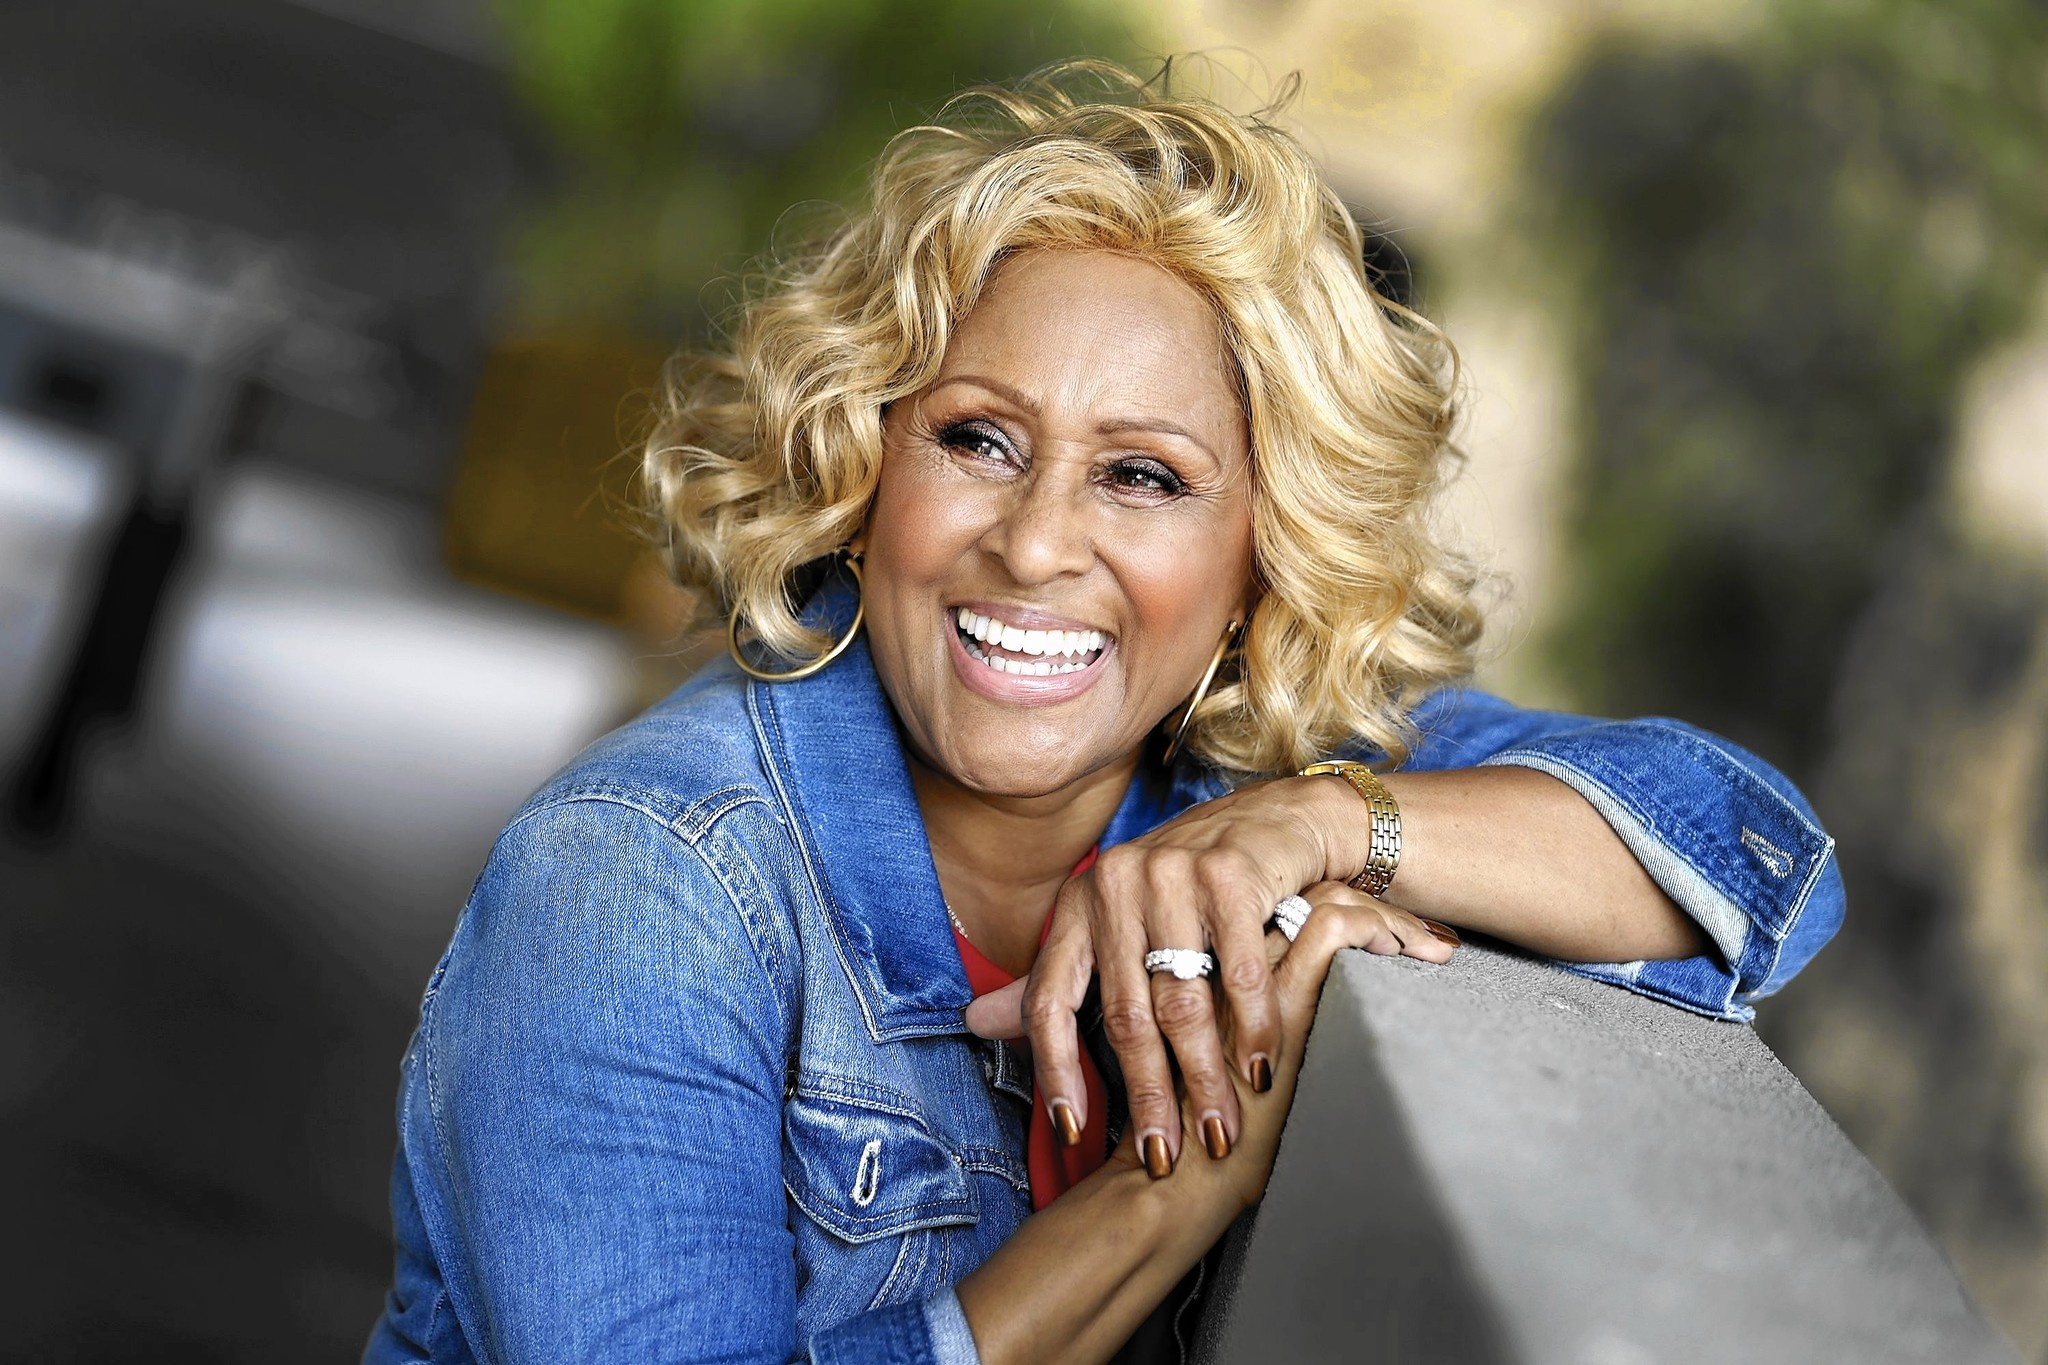 Darlene Love on 'Introducing' herself: 'I want the world ...